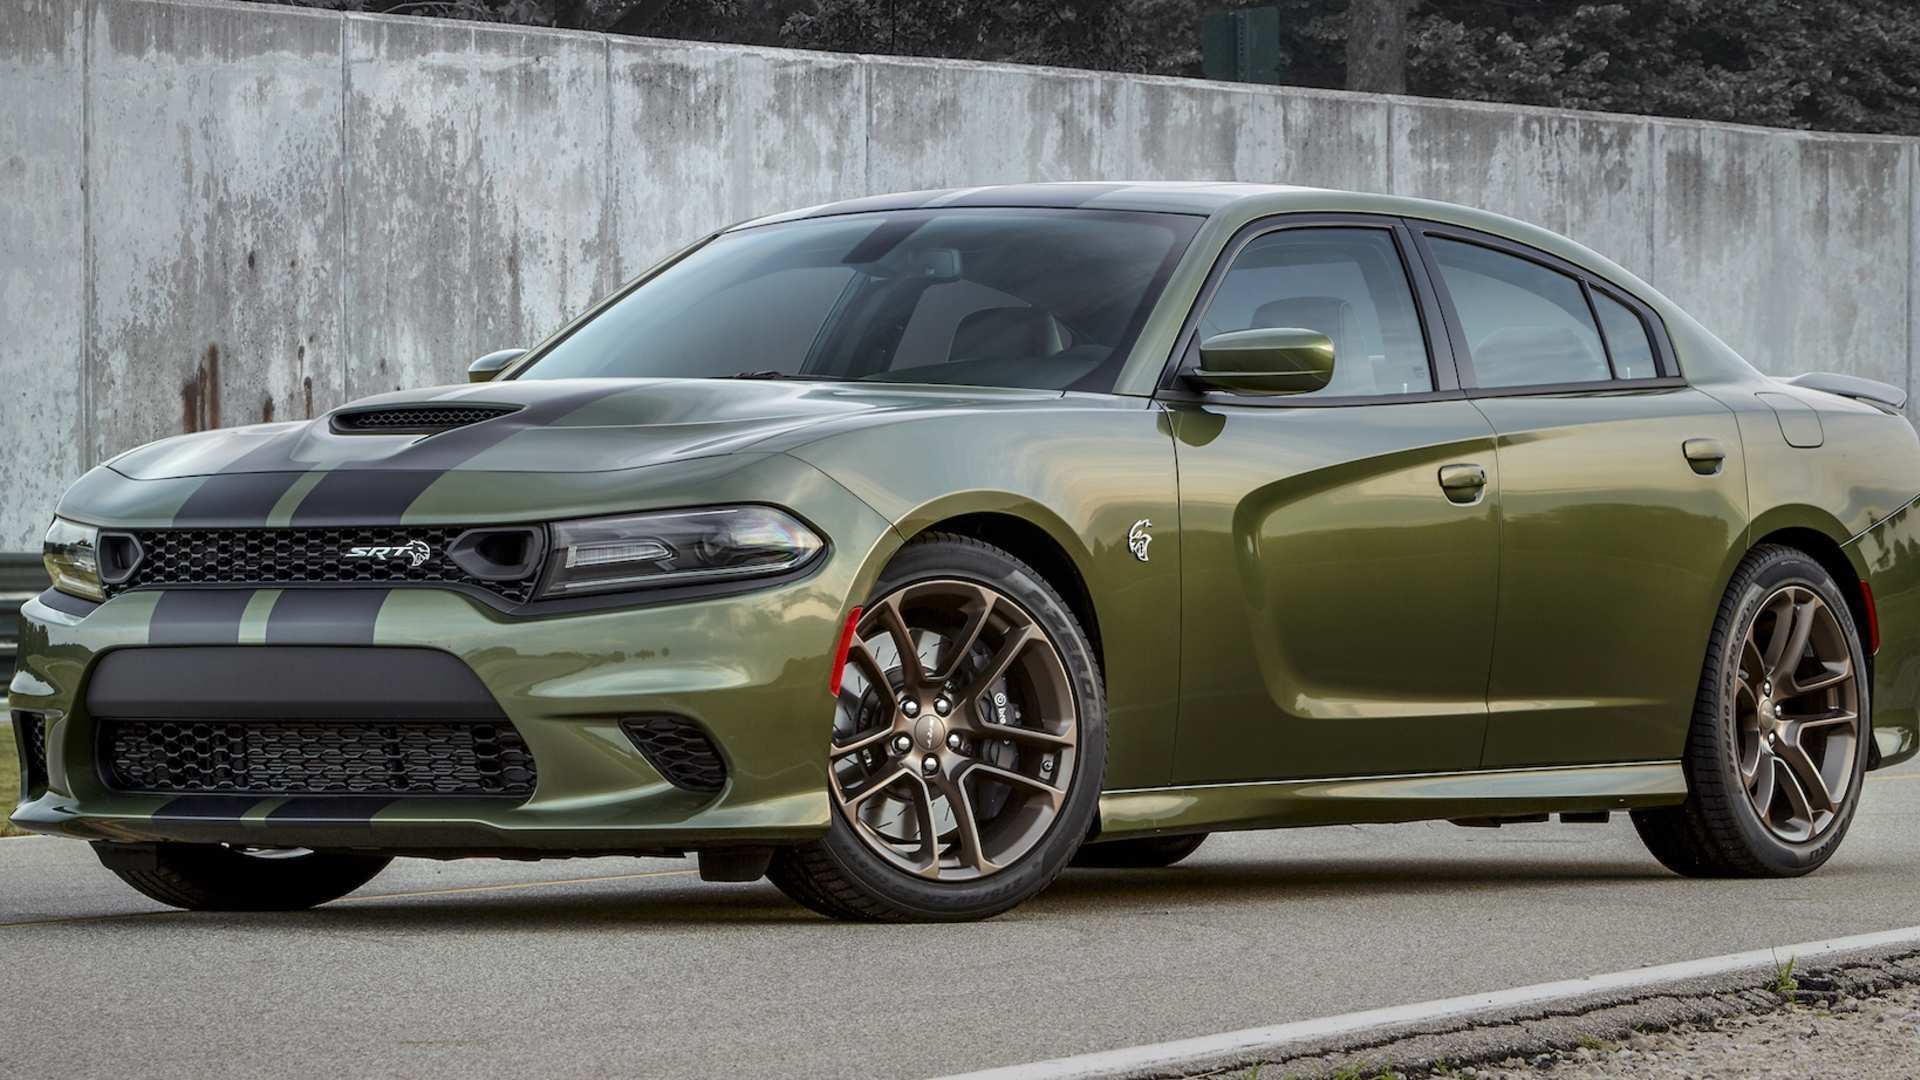 48 Great Dodge 2019 Order Performance And New Engine Spesification with Dodge 2019 Order Performance And New Engine